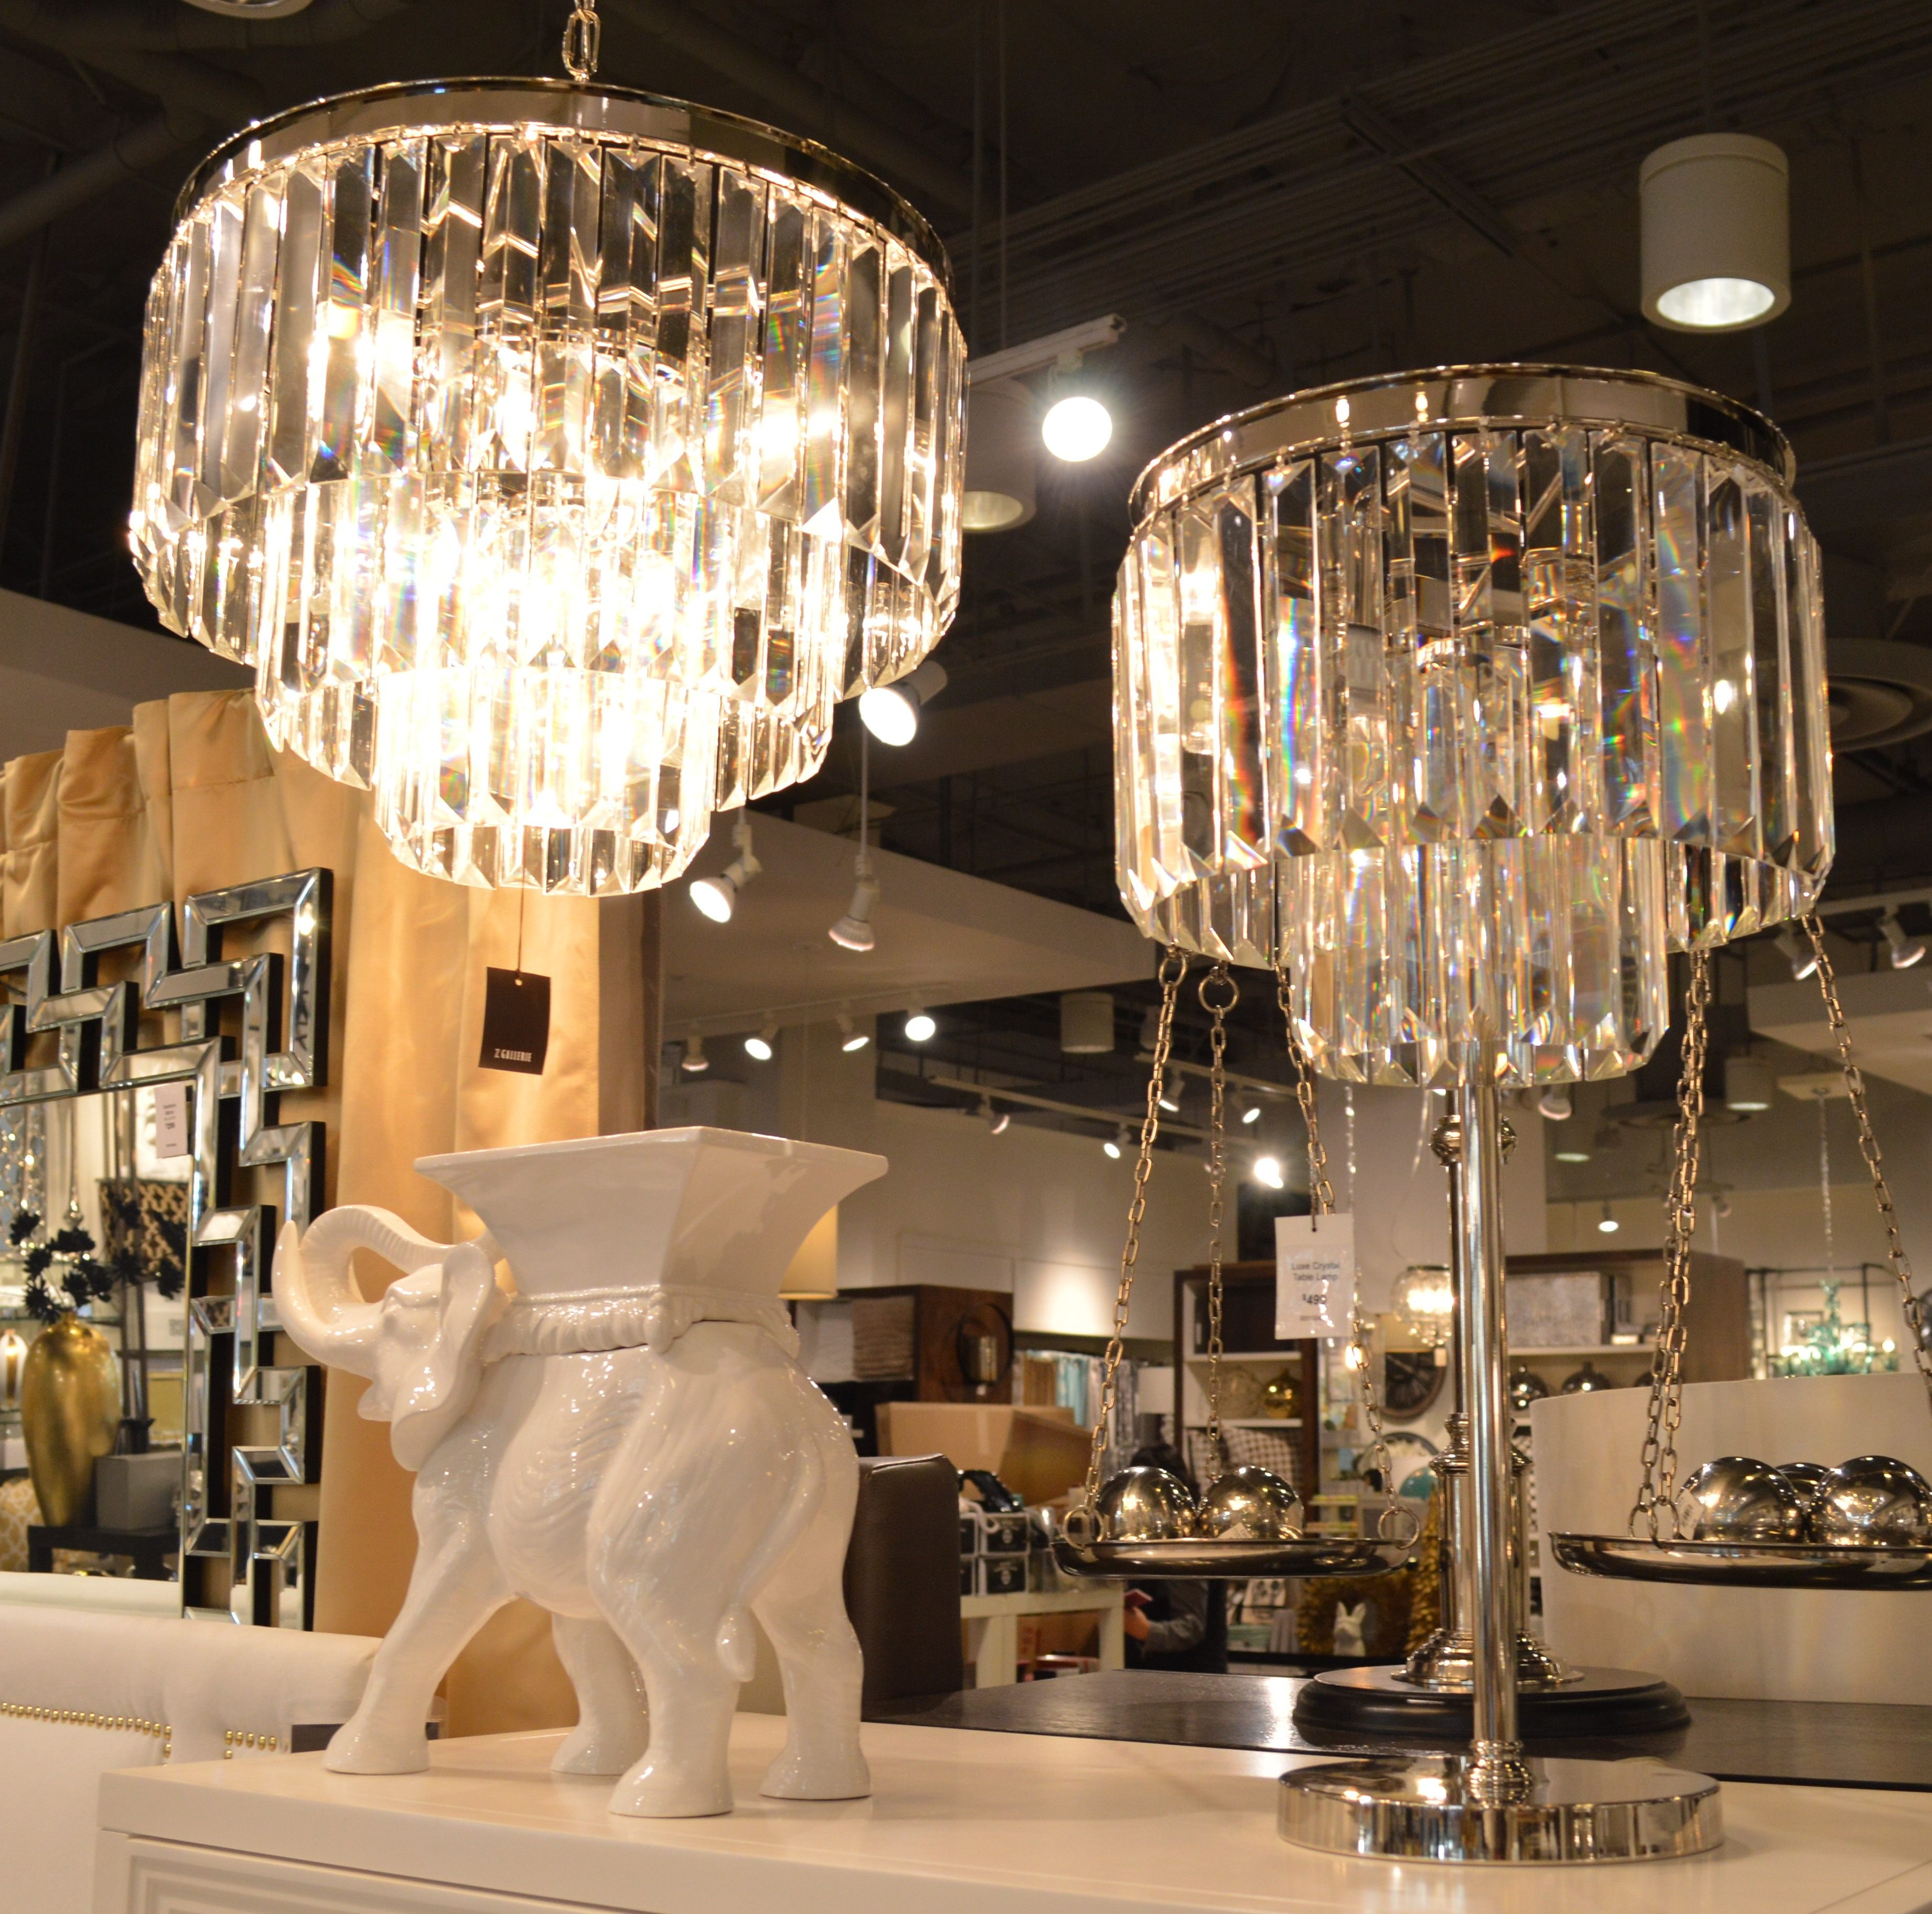 z gallerie lighting mirror from top all items from z gallerie santana row light fixtures instore only call 14086159865 clock budda the godfather classic quotes book gallerie bay area fashionista